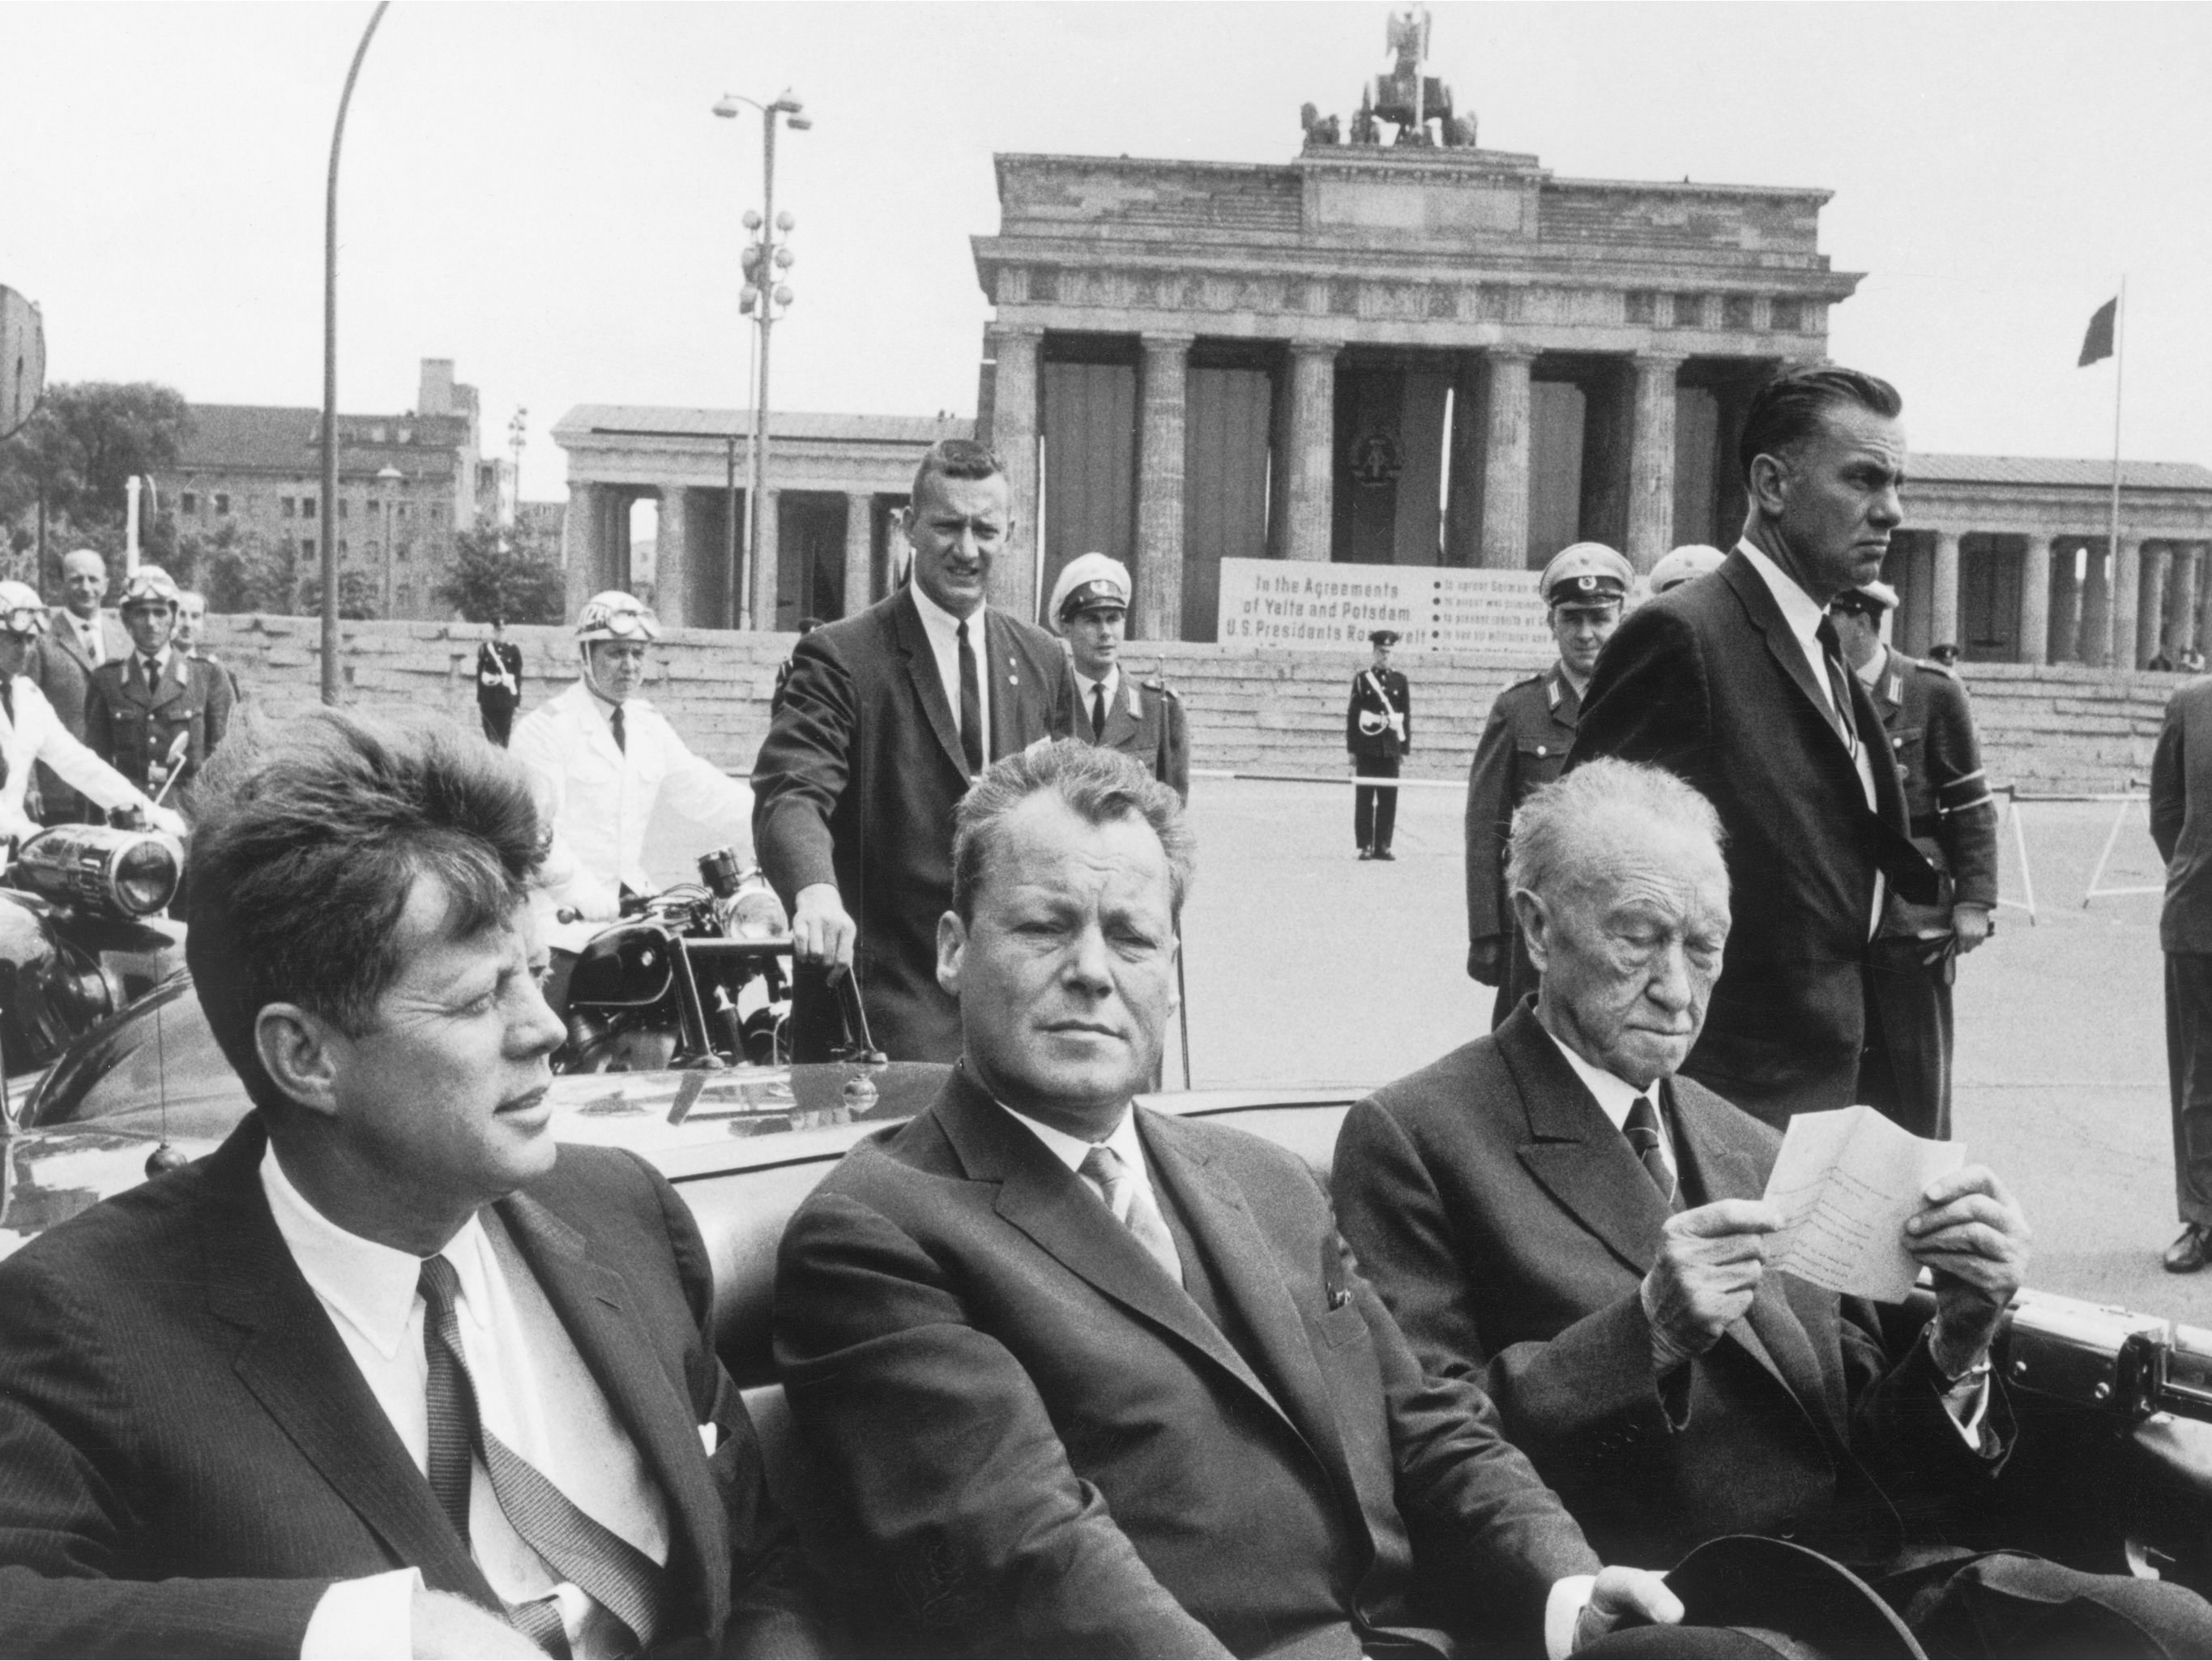 Photograph of U.S. President John F. Kennedy during a visit to West Berlin on June 26, 1963